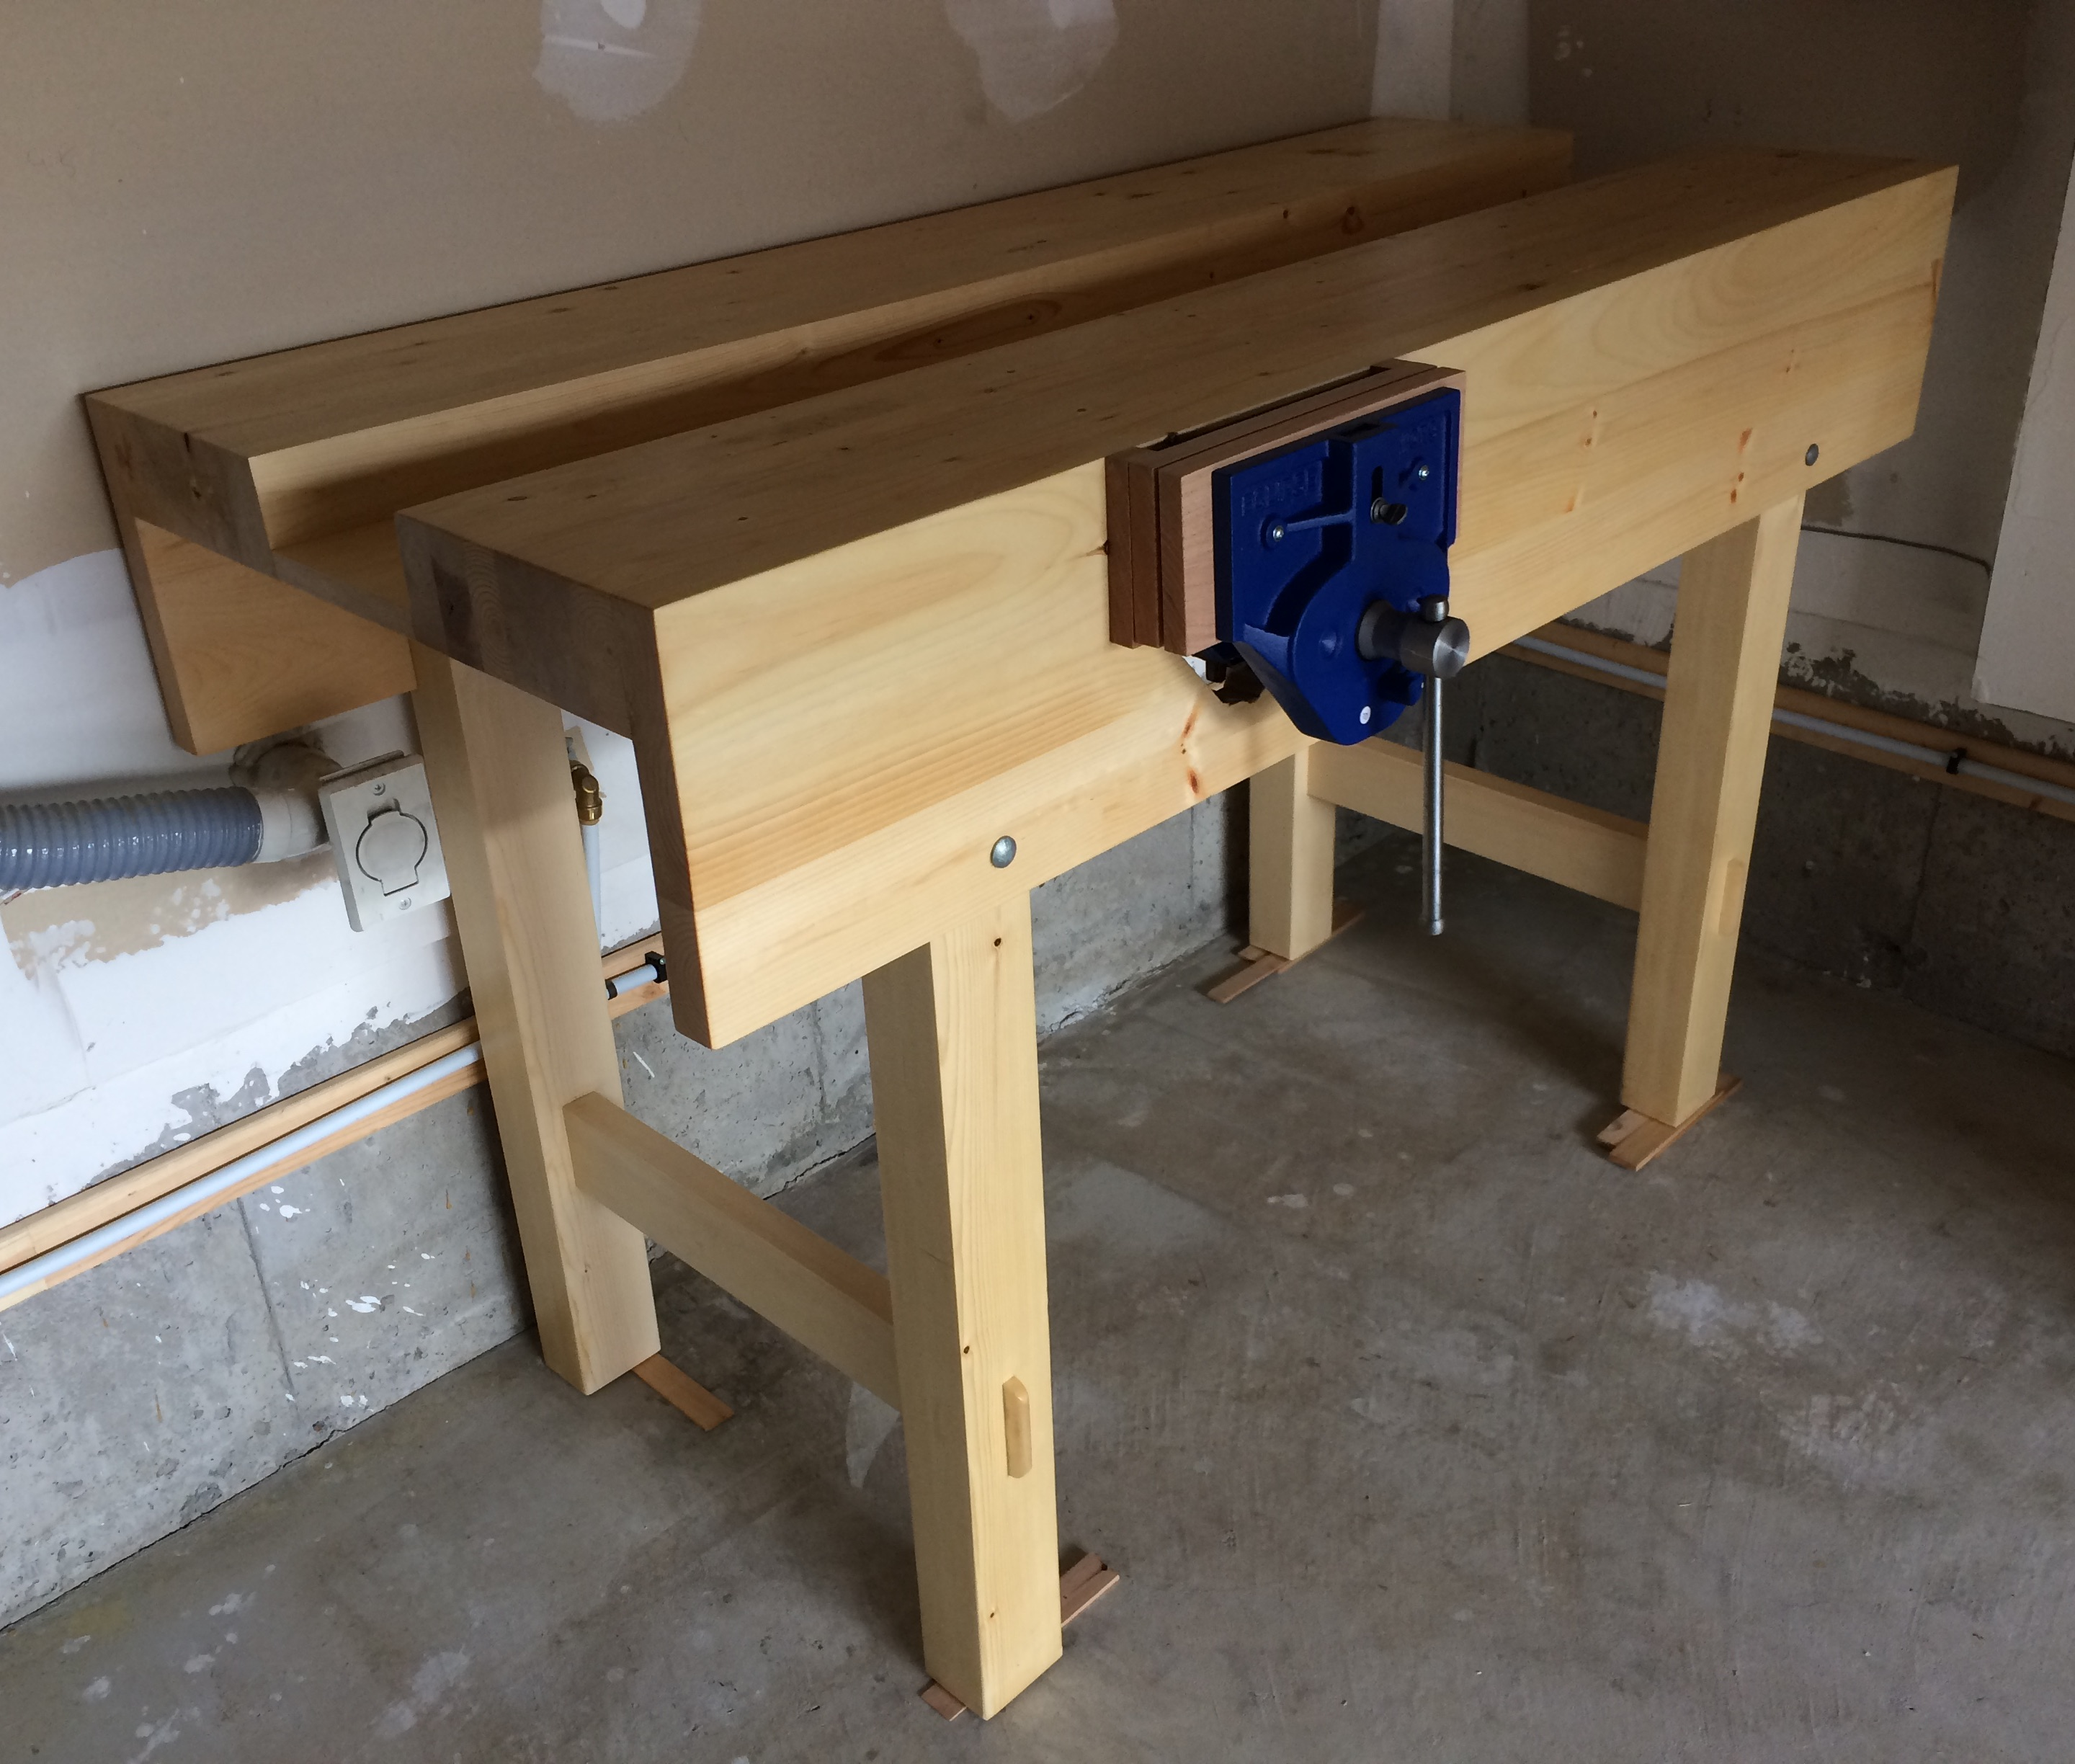 "Workbench: made from dimensional SPF, 65cm x 150cm, 97cm high. Finish: two coats of shellac, wax. Eclipse 9"" QR vise with red oak pads. — This was my first big project. It took me two months of weekends to make. Hand planing round corners of knotty two-by-fours was painful but valuable experience. I had to sharpen my plane every half an hour. Squaring the aprons was time consuming: I had to rebuilt them three times because they kept twisting overnight. I can safely say I learned a lot while building this bench by using hand tools only. Despite all mistakes and imperfections, I'm happy now. — When you make your project, remember: Never give up."